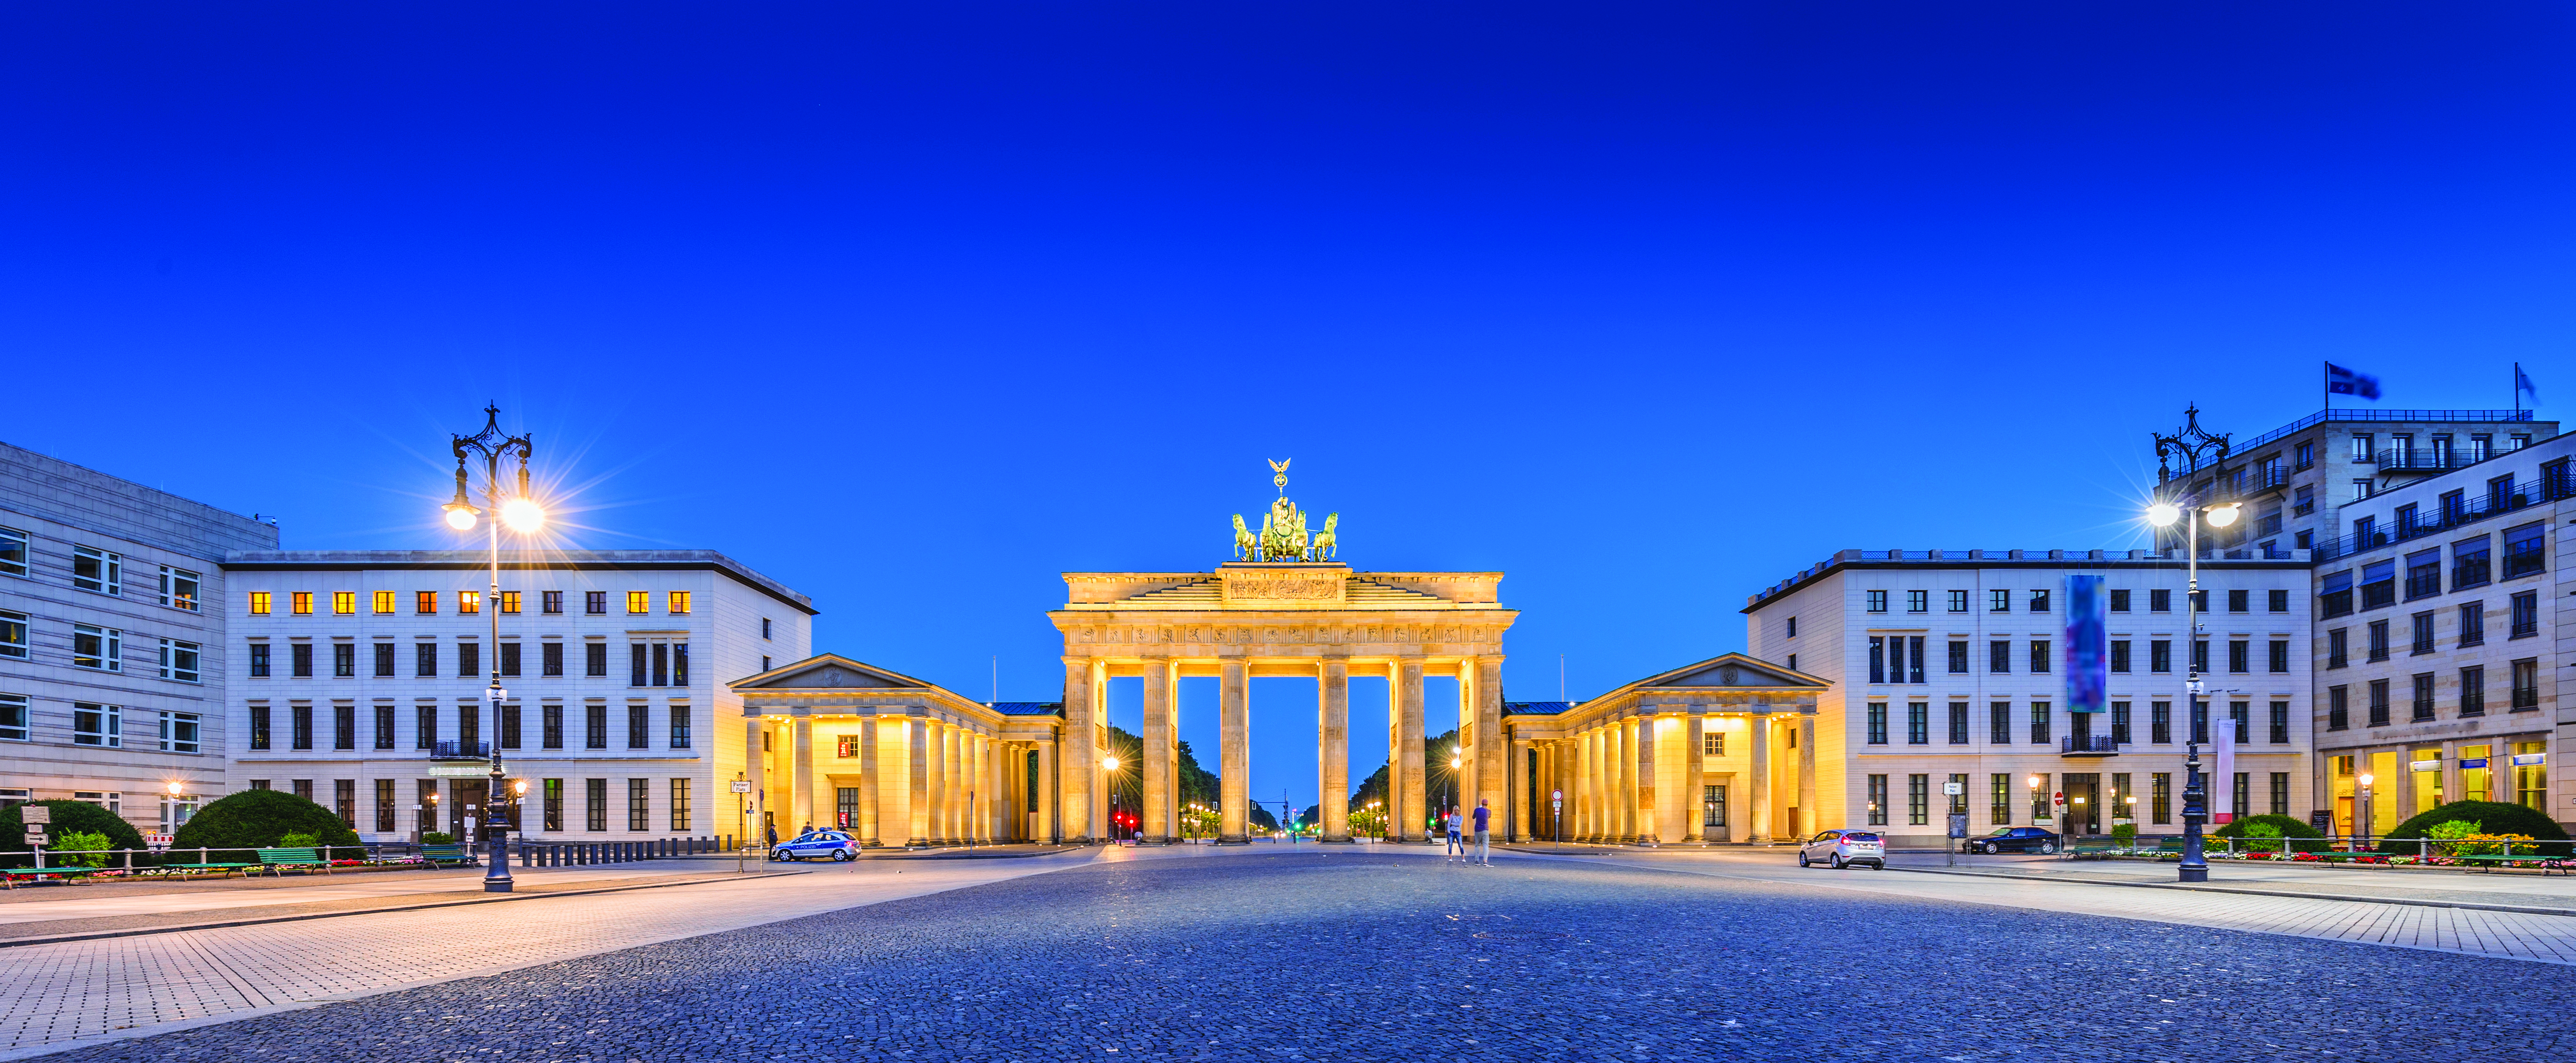 Gap Year Program - CIEE Gap Year Abroad in Berlin, Germany - Language & Culture  1